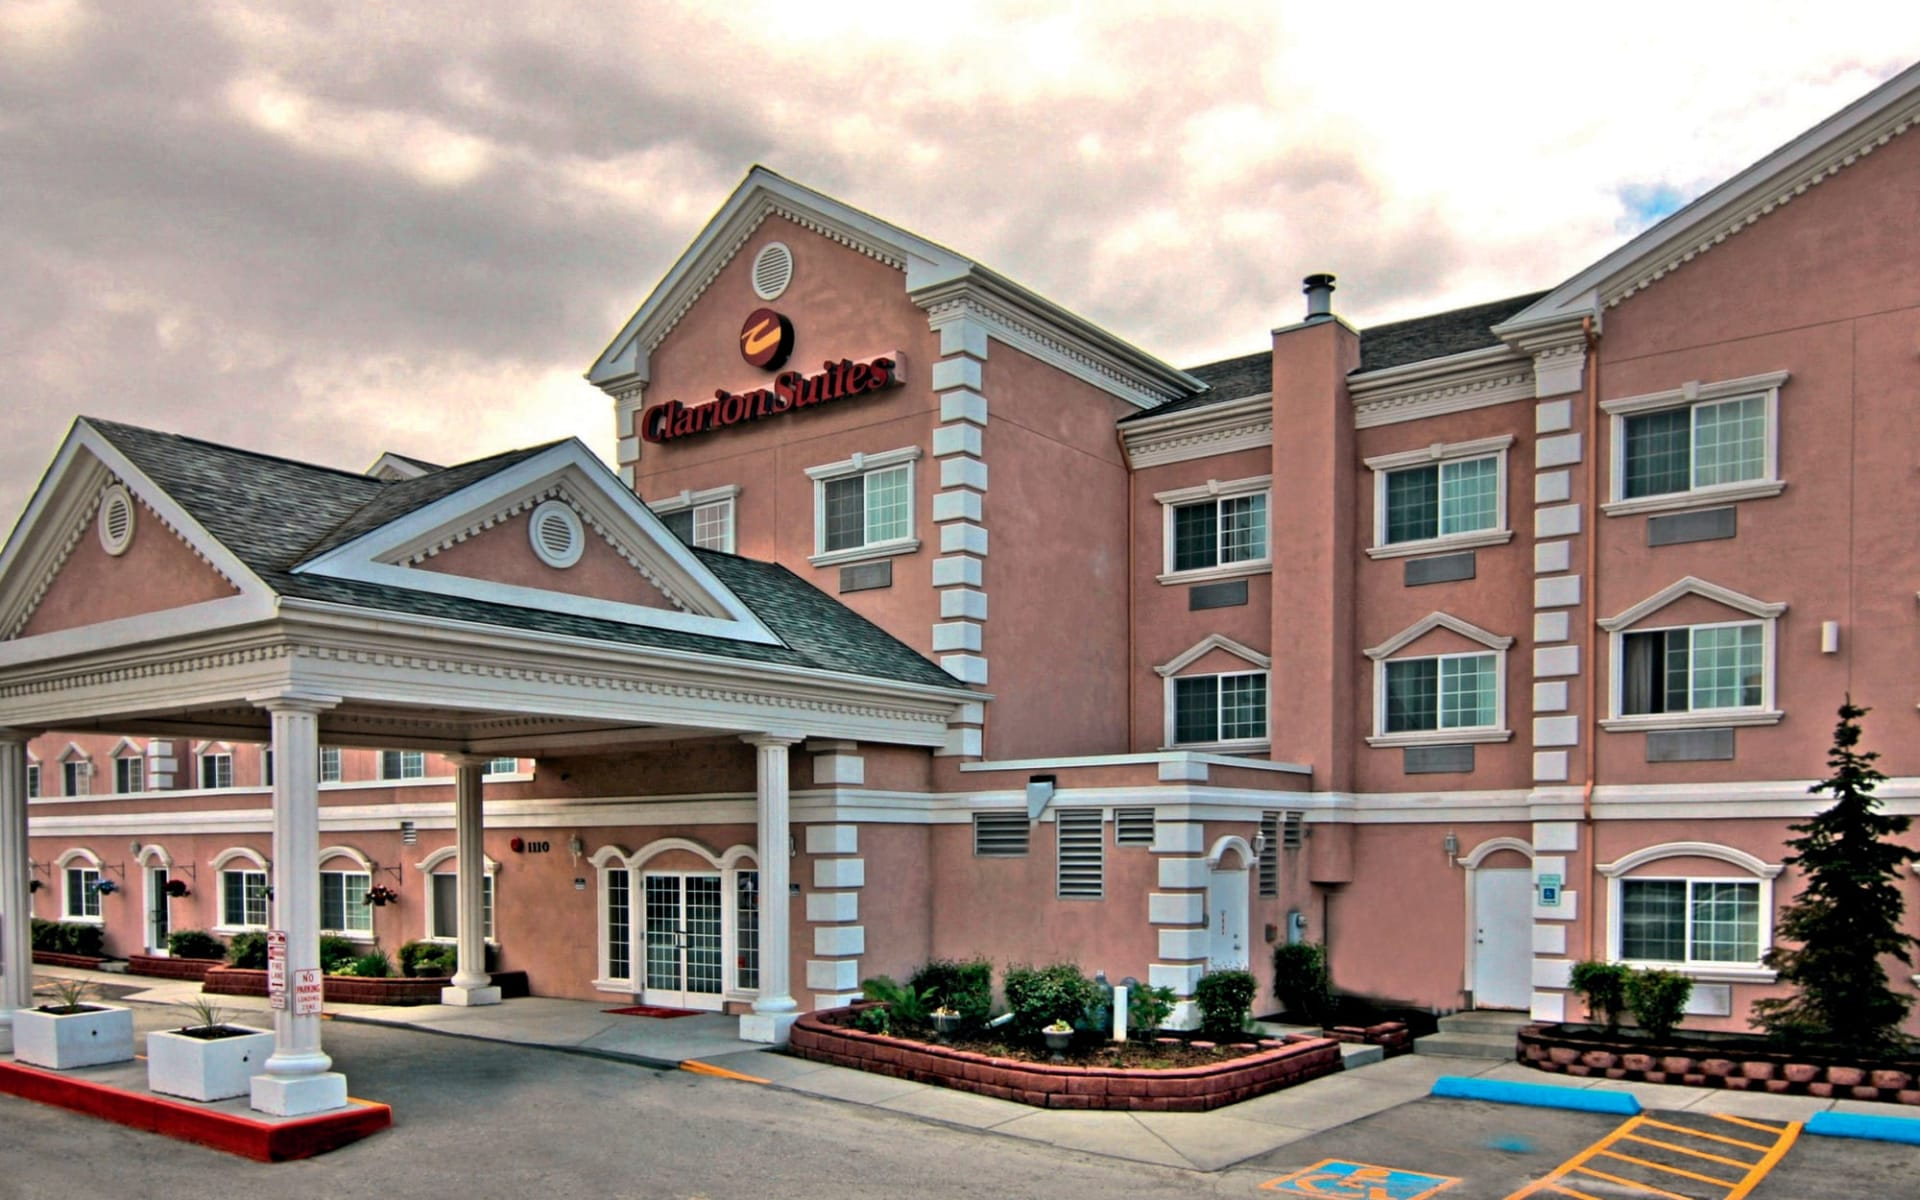 Clarion Suites Downtown in Anchorage:  Clarion Suites Downtown Anchorage - Aussenansicht